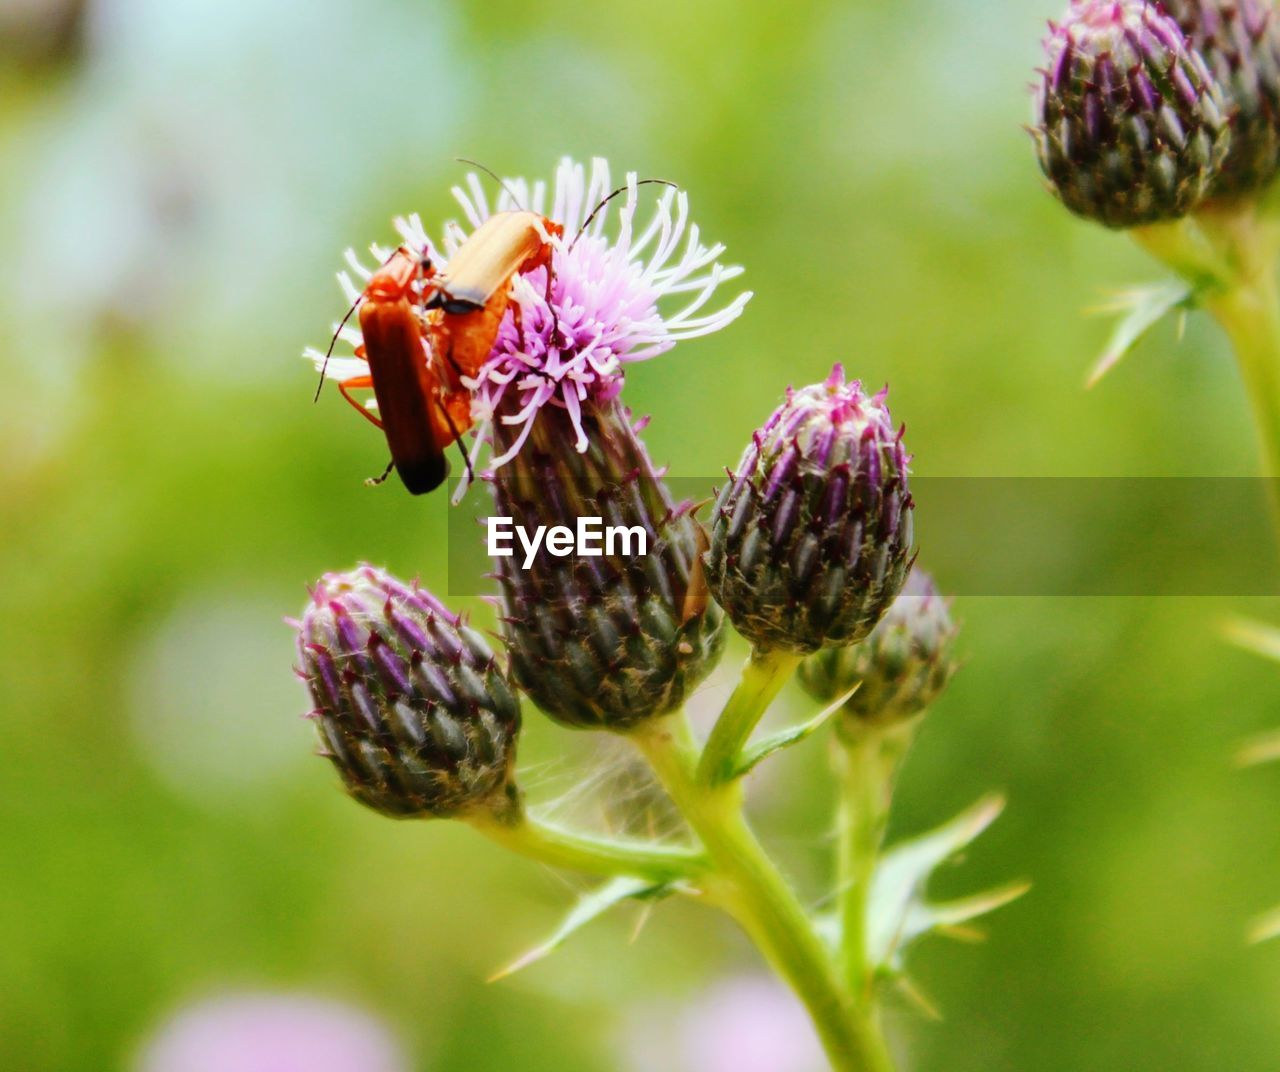 flowering plant, flower, plant, animal wildlife, fragility, invertebrate, insect, animals in the wild, animal, beauty in nature, vulnerability, close-up, animal themes, freshness, flower head, growth, petal, bee, pollination, one animal, no people, outdoors